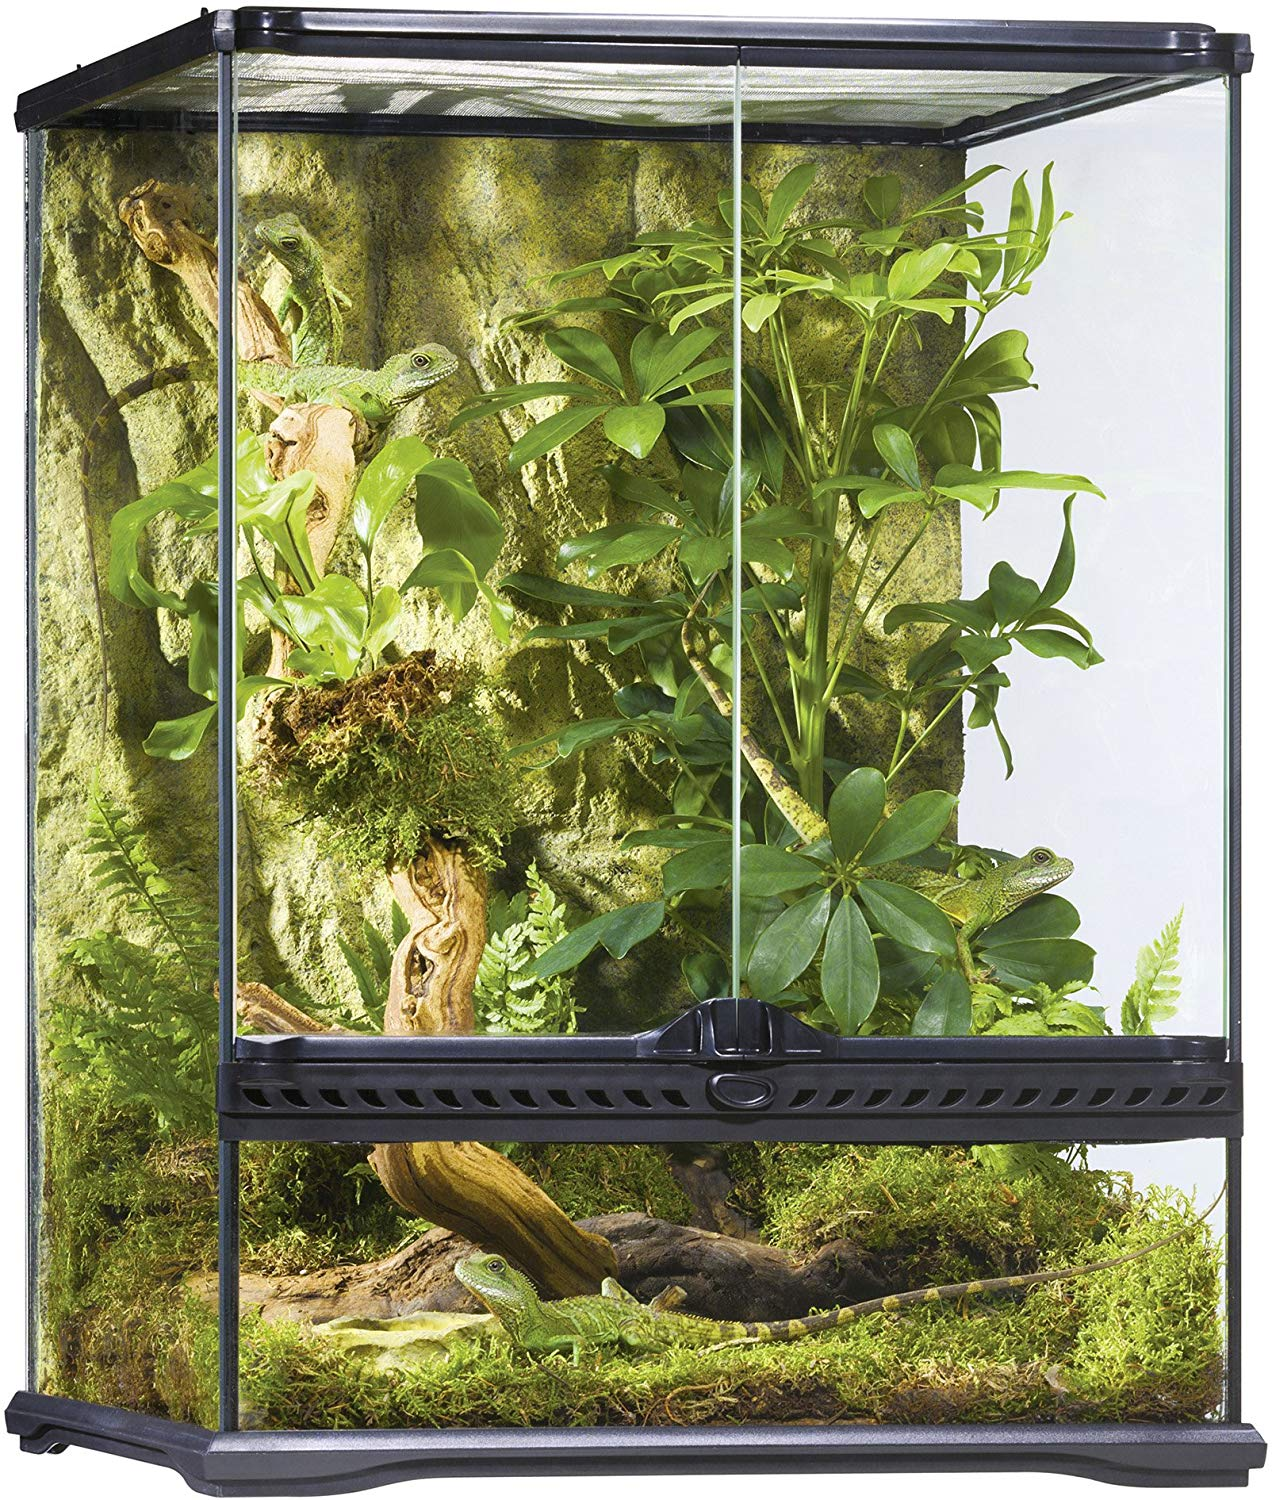 Exo Terra All Glass Terrarium is a good venomous snake cages